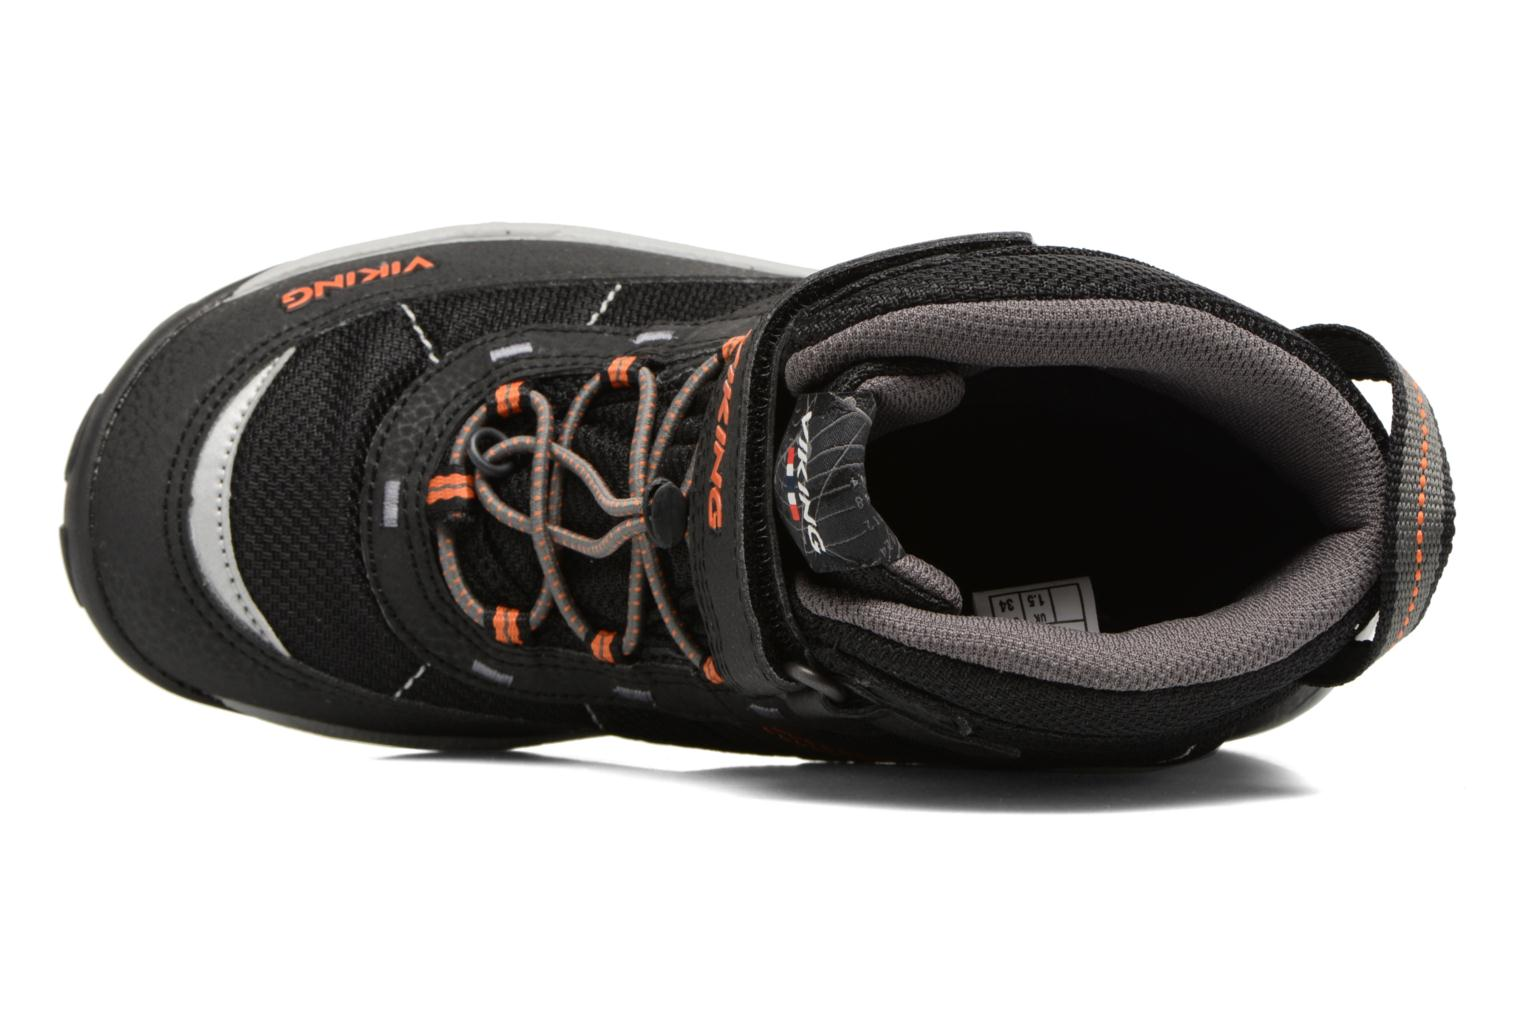 Sludd El/Vel GTX Black/orange